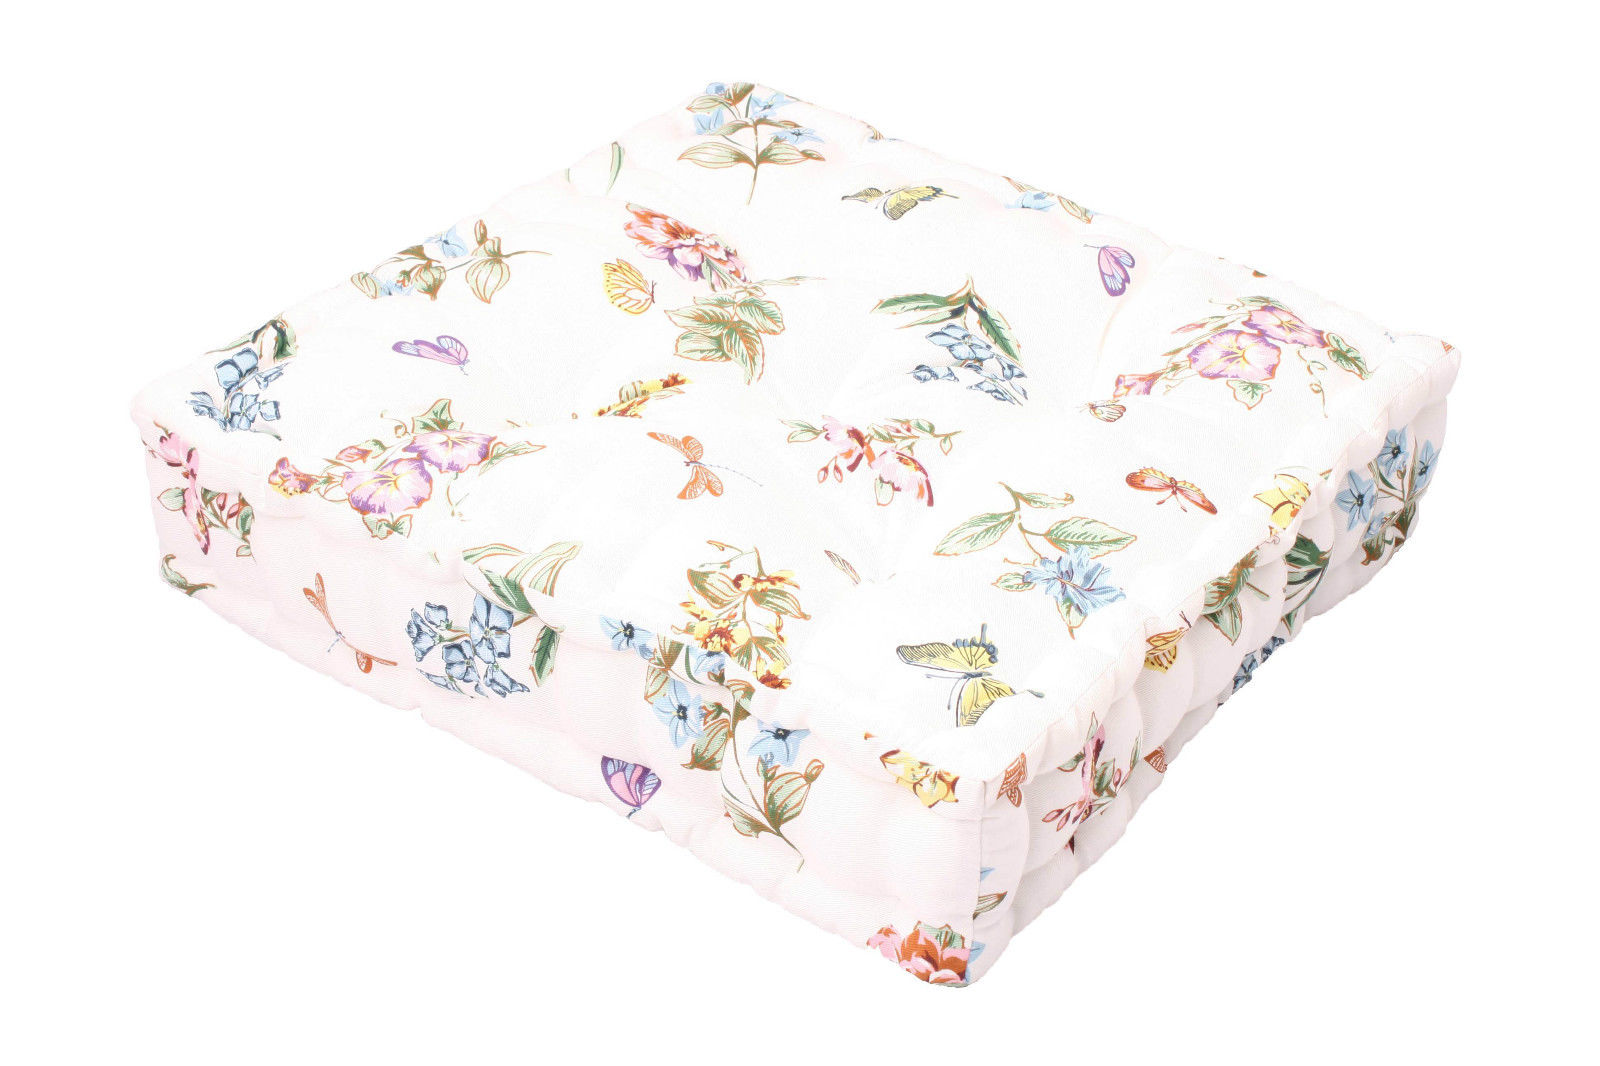 Butterfly Seat Pads Amp Cushions From Century Textiles